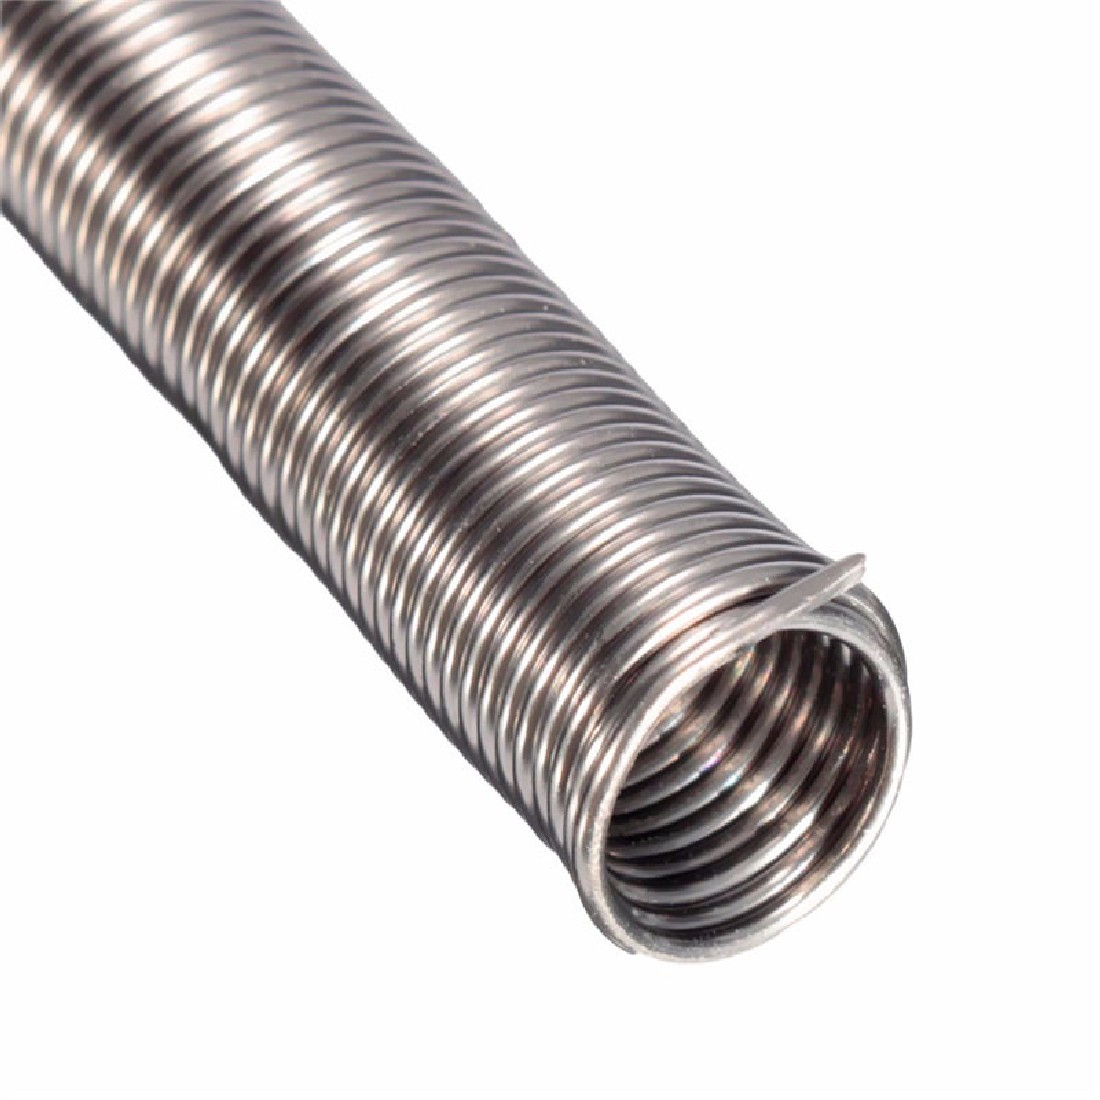 Tin Lead Solder Wire Tube Flux 60/40 Covered Soldering Tools For DIY Hobby Electrical Weldin